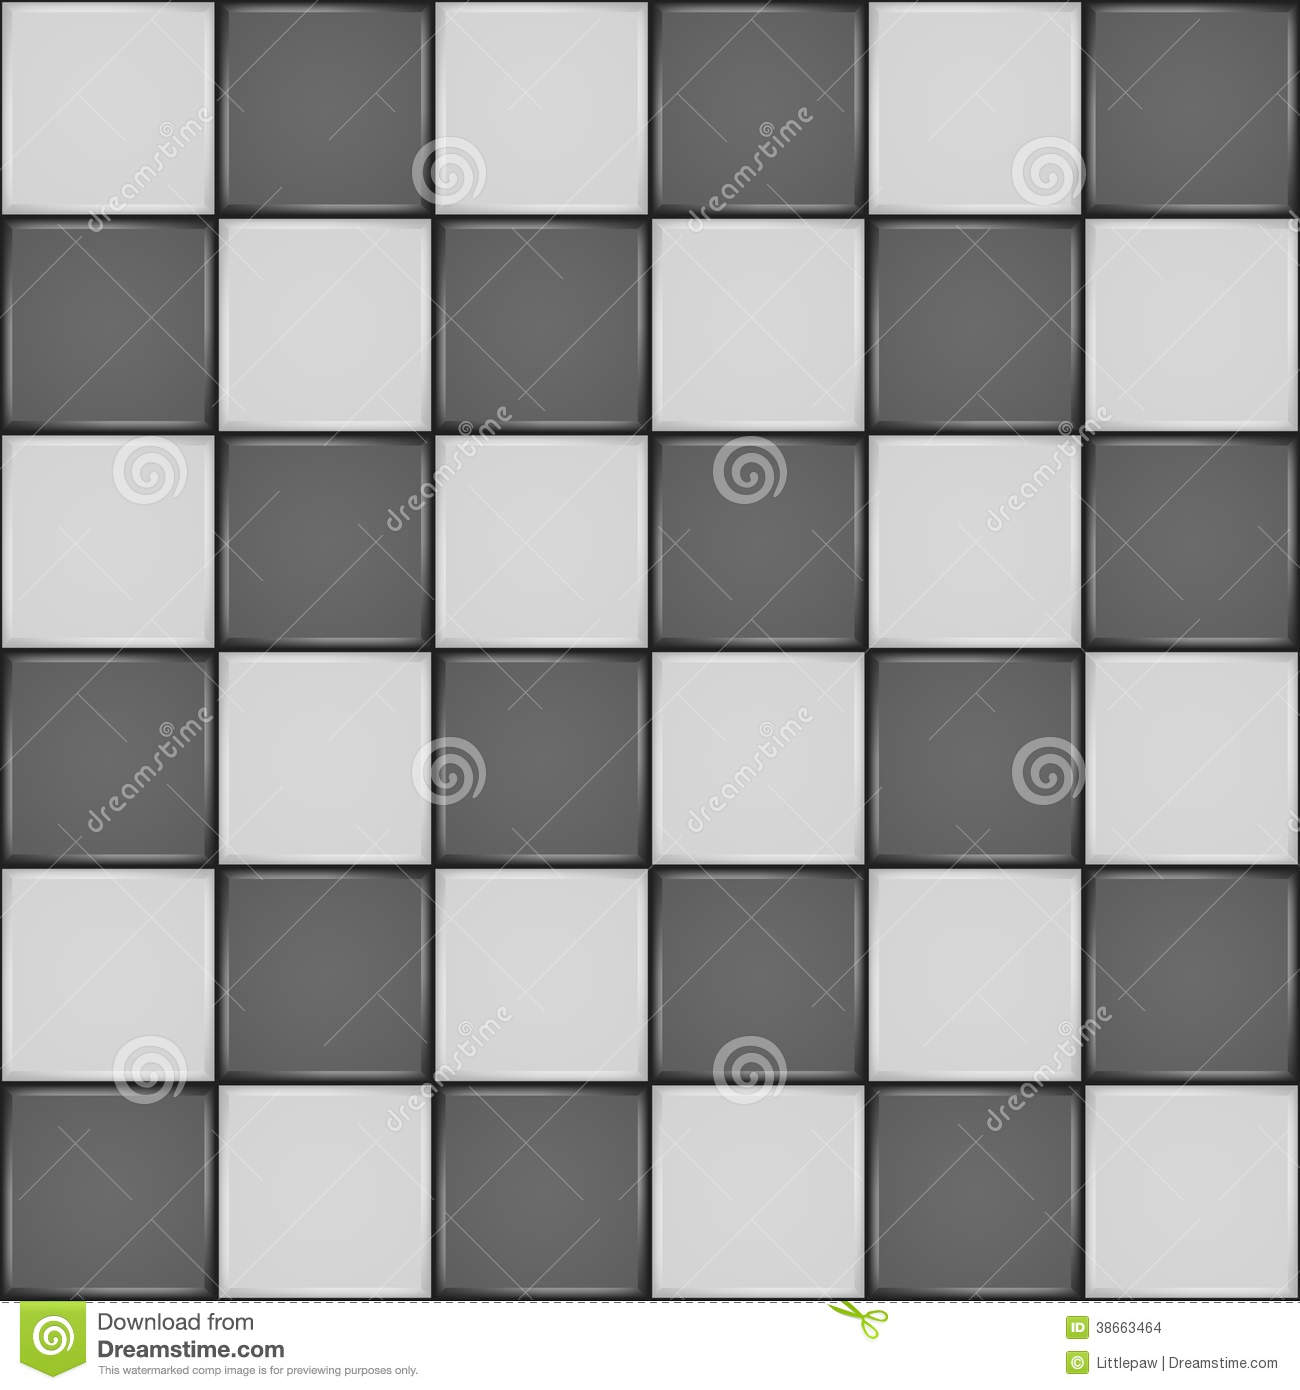 Mosaic tile mosaic tiles mosaic art and designs for bathroom - Black And White Ceramic Tile Seamless Pattern Stock Images